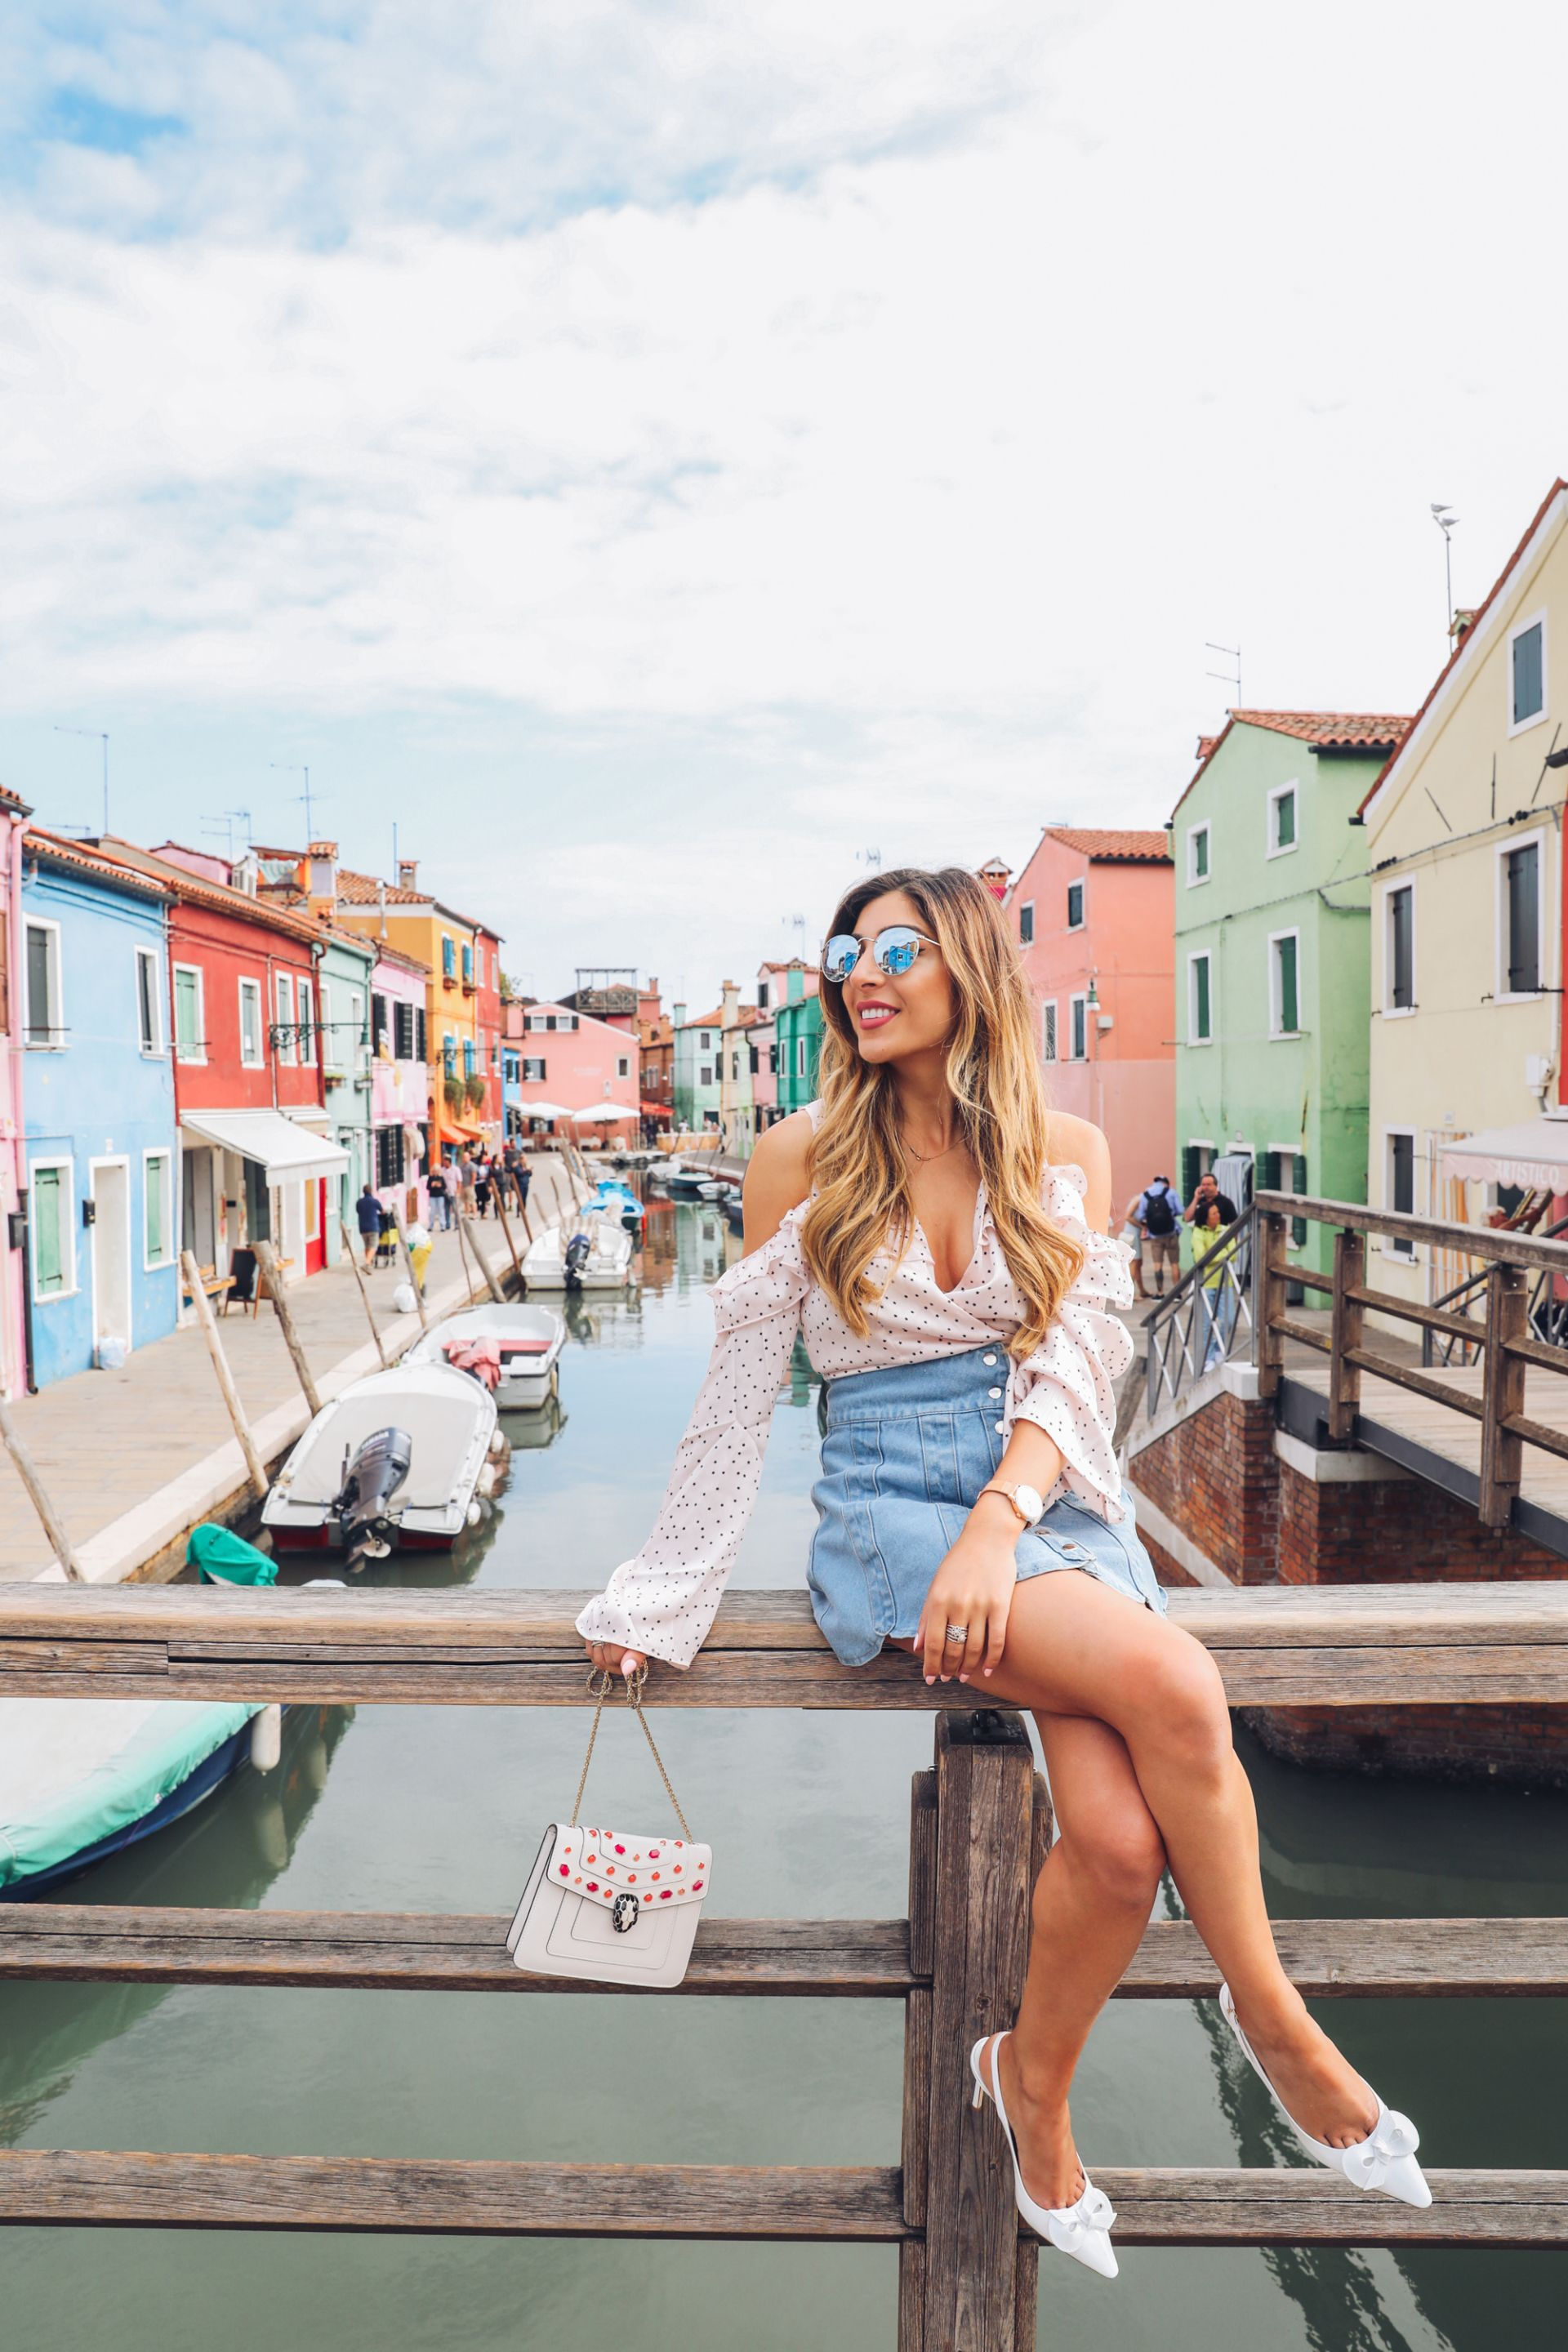 Amelia-Burano-second-1